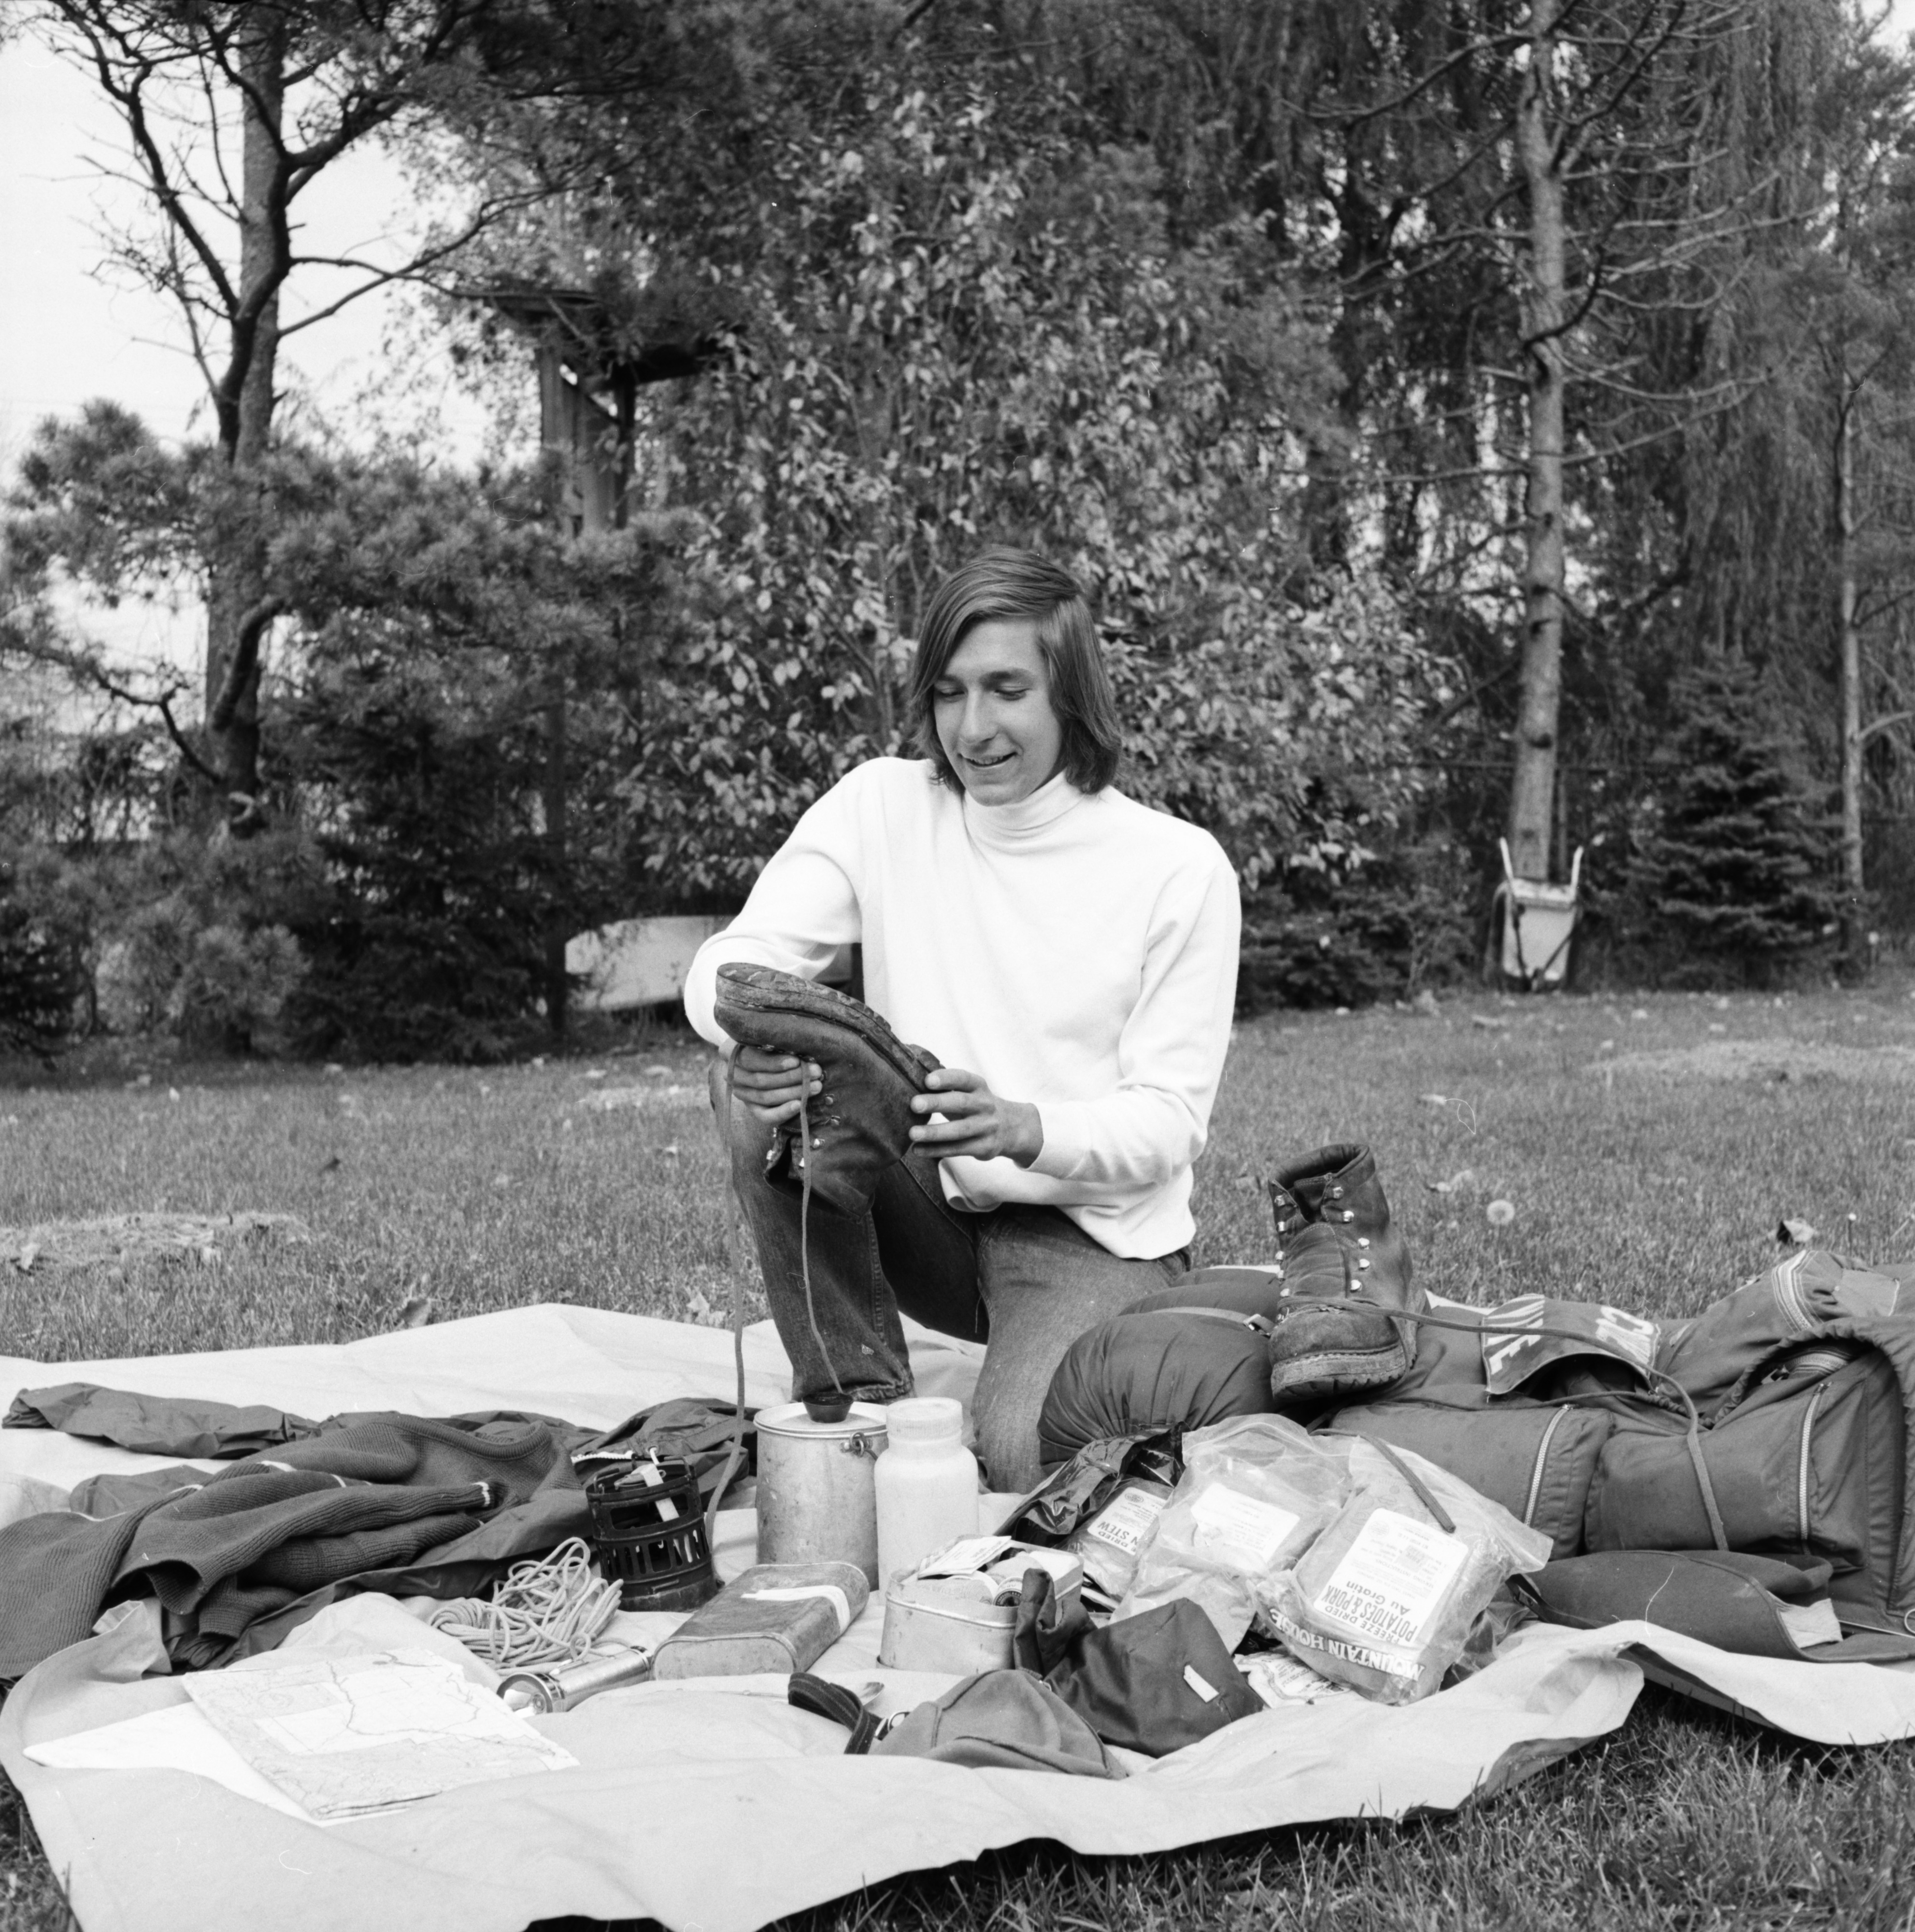 Eric Ryback returns from hiking trip, October 1972 image